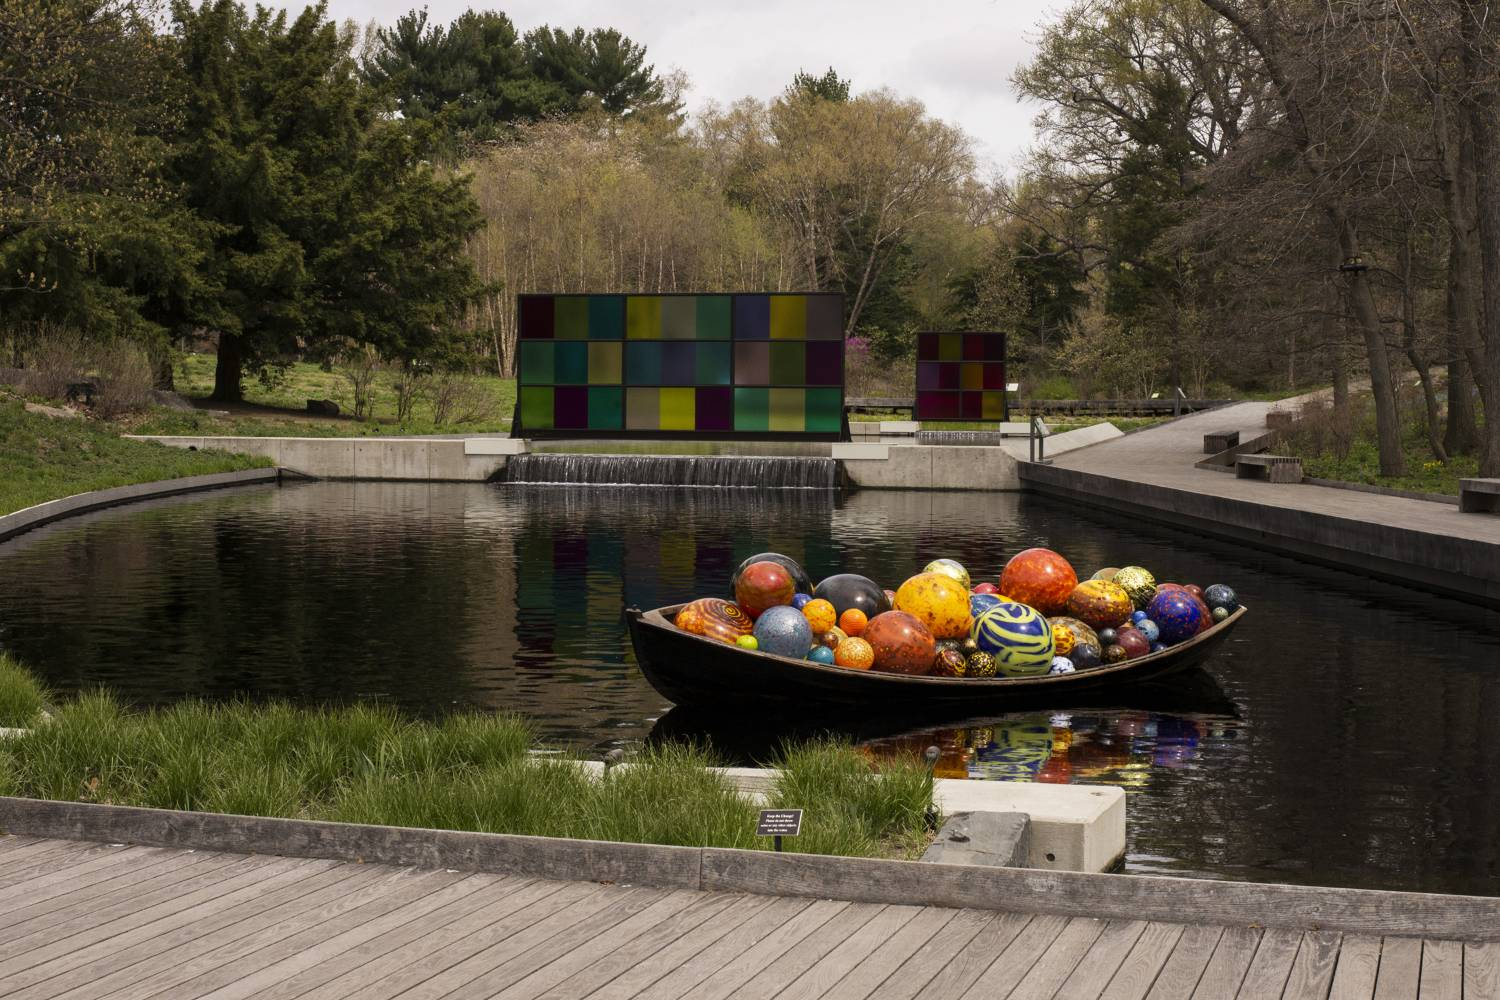 Dale Chihuly at the New York Botanical Garden | Attractions